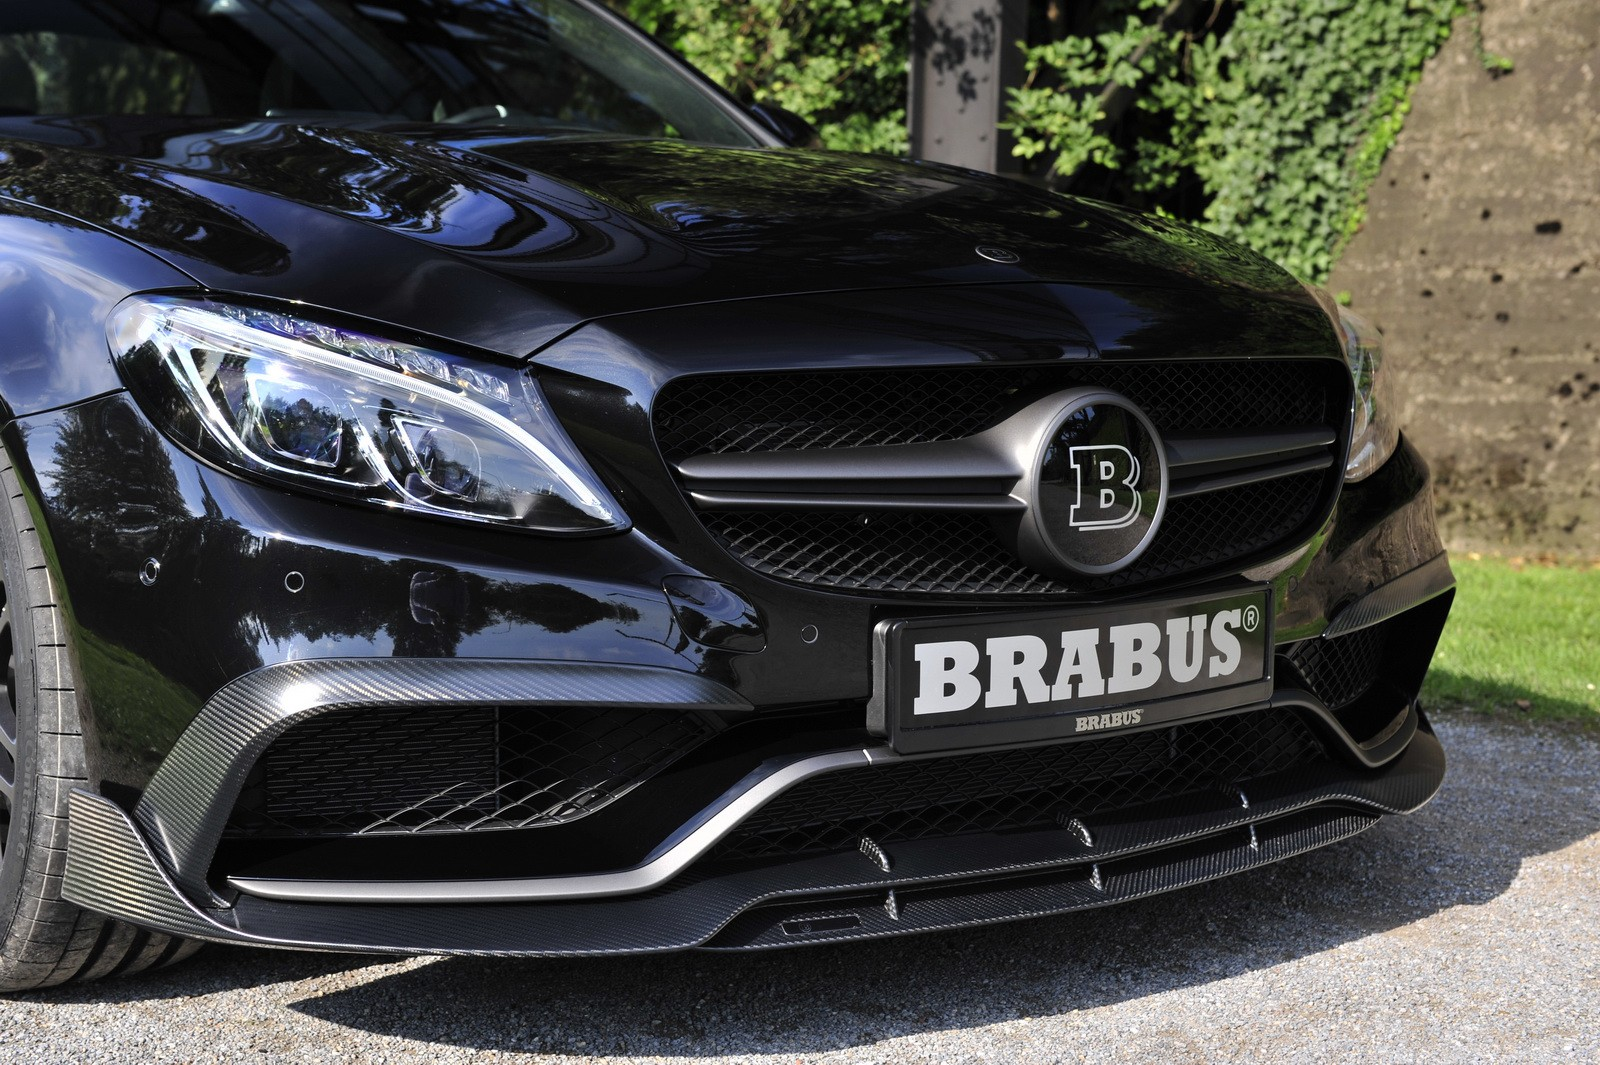 Mercedes-Benz C63 AMG S from Brabus